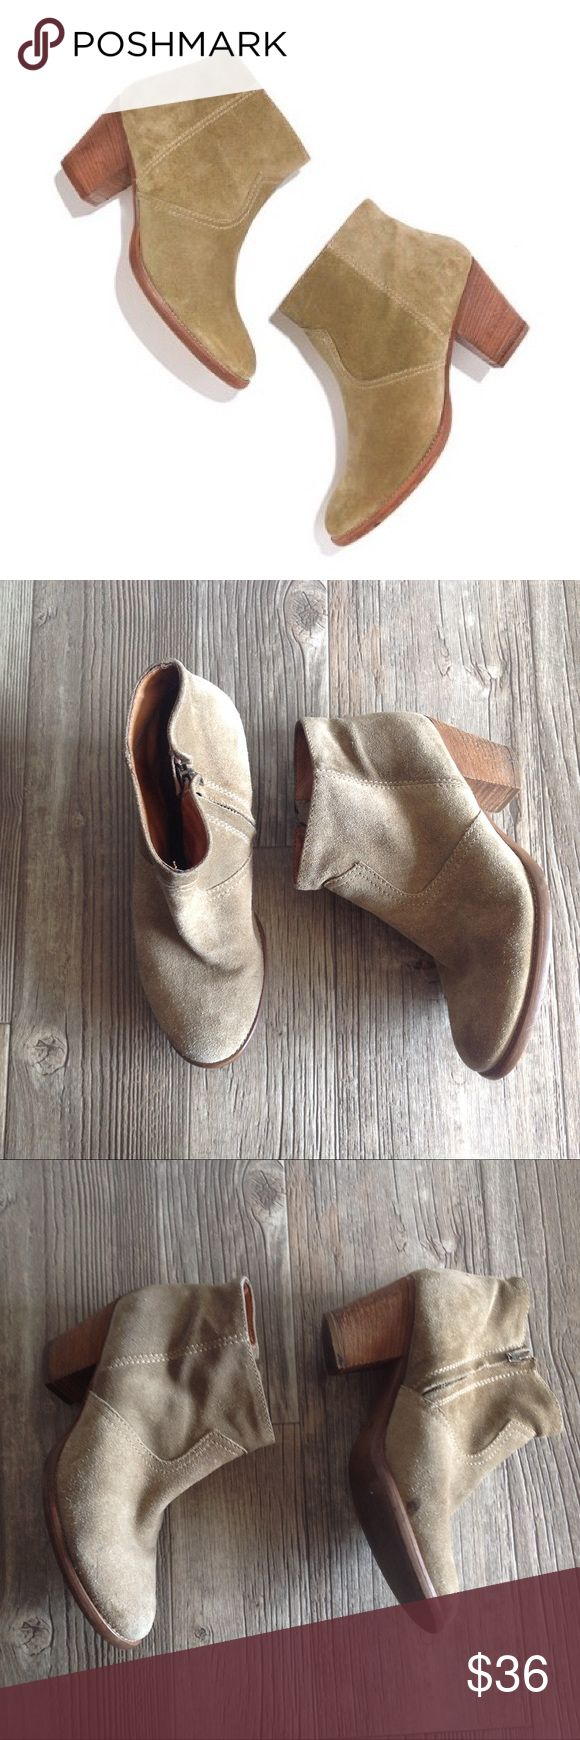 Madewell Zip Code Booties in Suede - scuff on the back of the right boot - the suede definitely needs cleaning but the soles have very light wear Madewell Shoes Ankle Boots & Booties